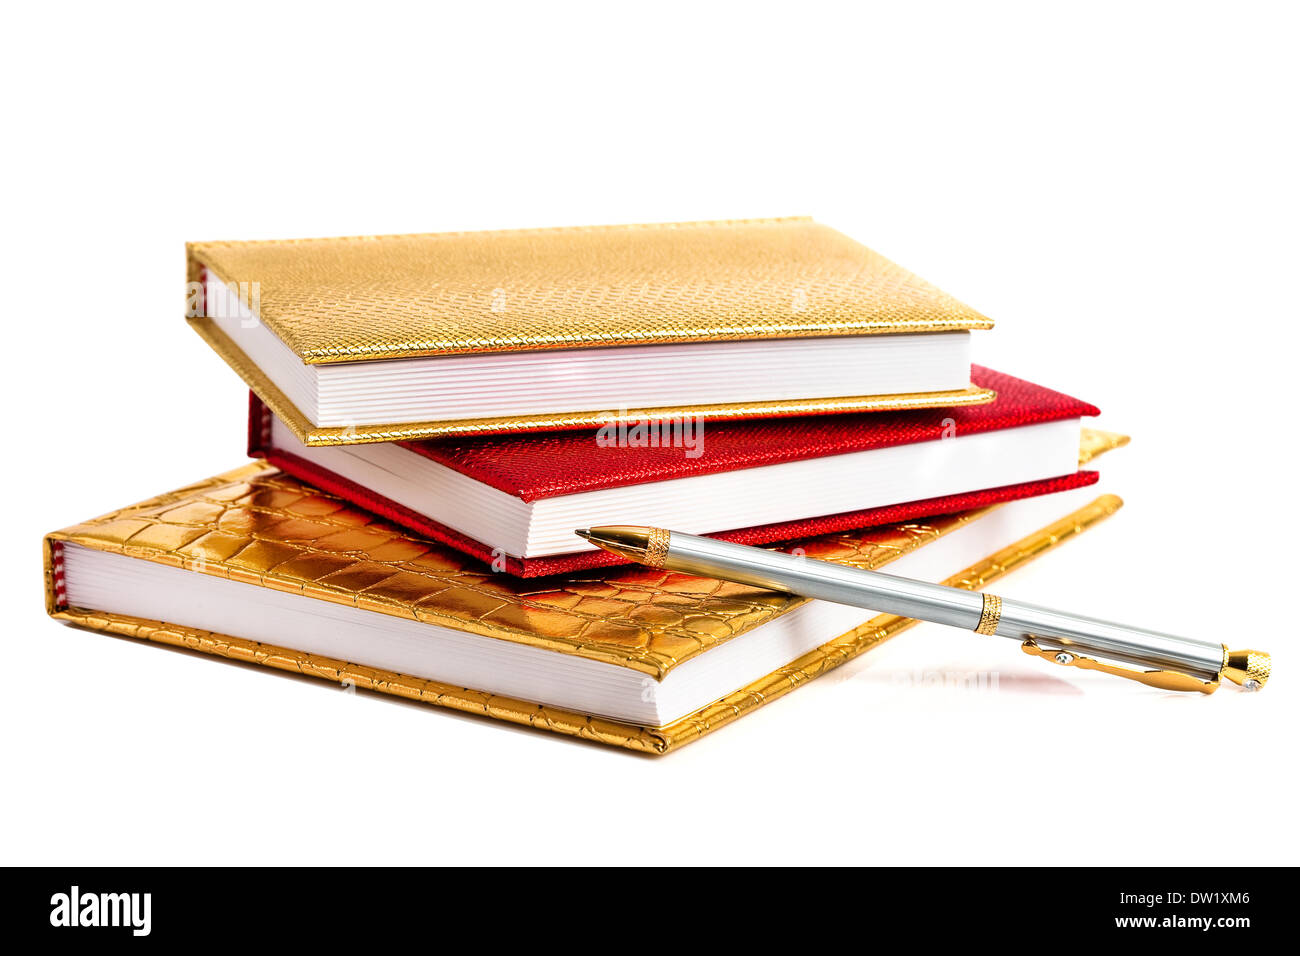 Golden and red notebooks with silver pen - Stock Image